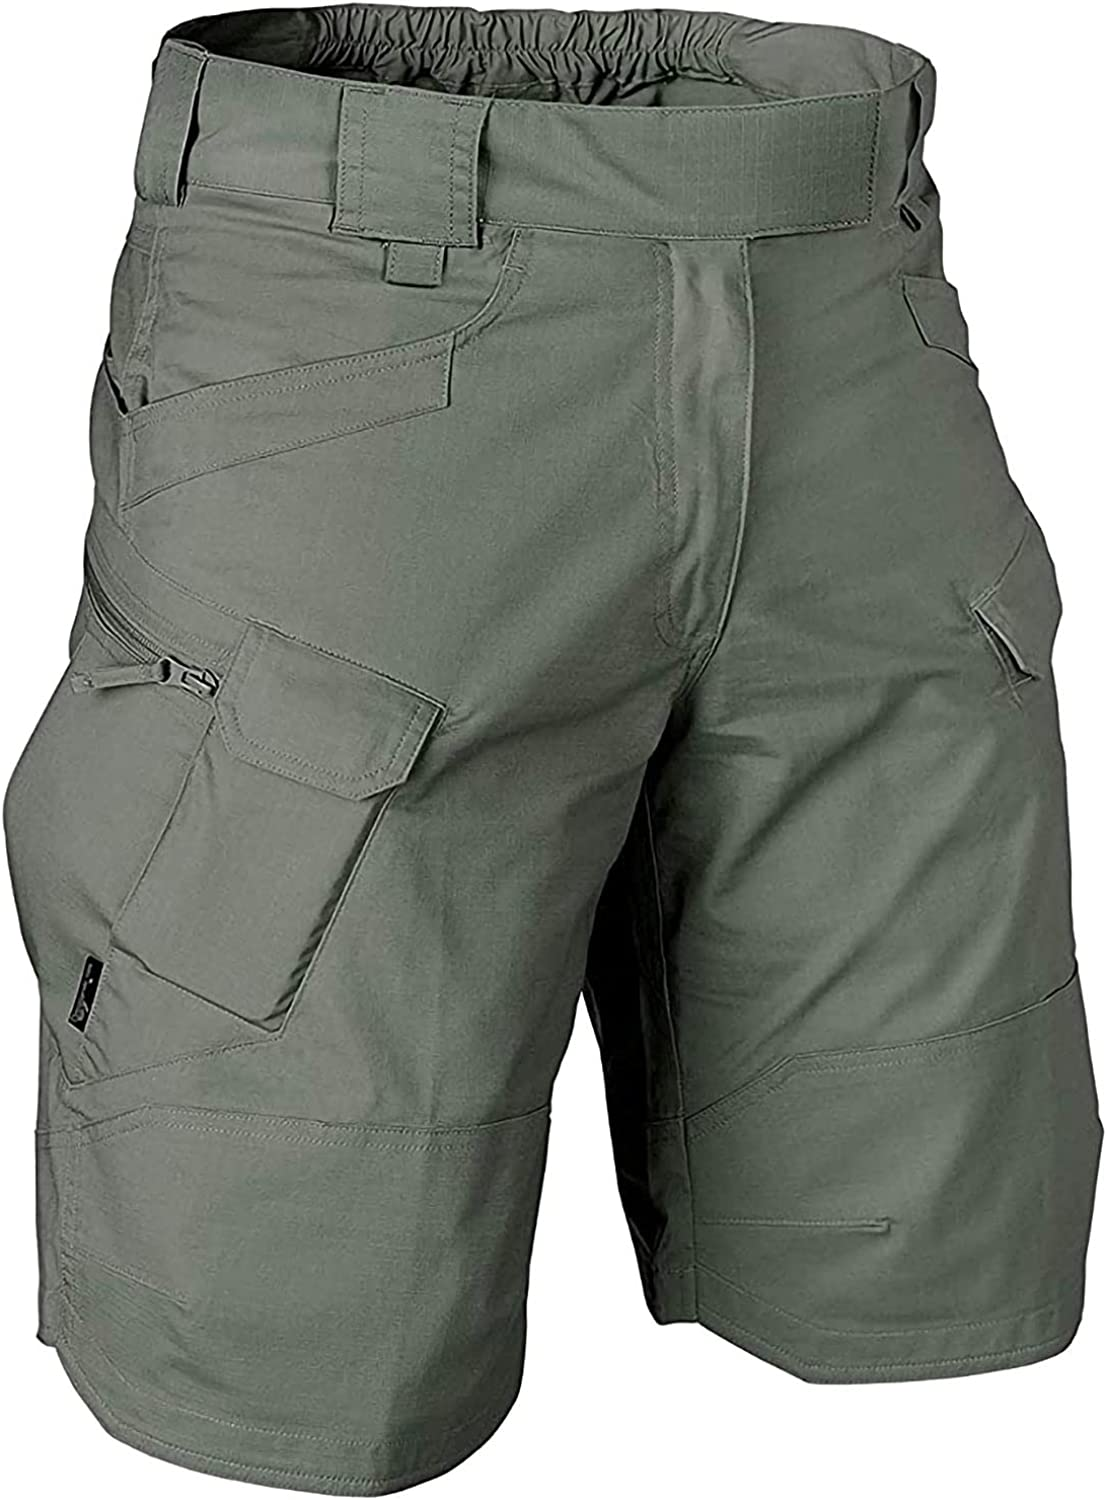 Men Short Pants Casual,Shorts Classic Twill Relaxed Work Wear Combat Safety Cargo Pants